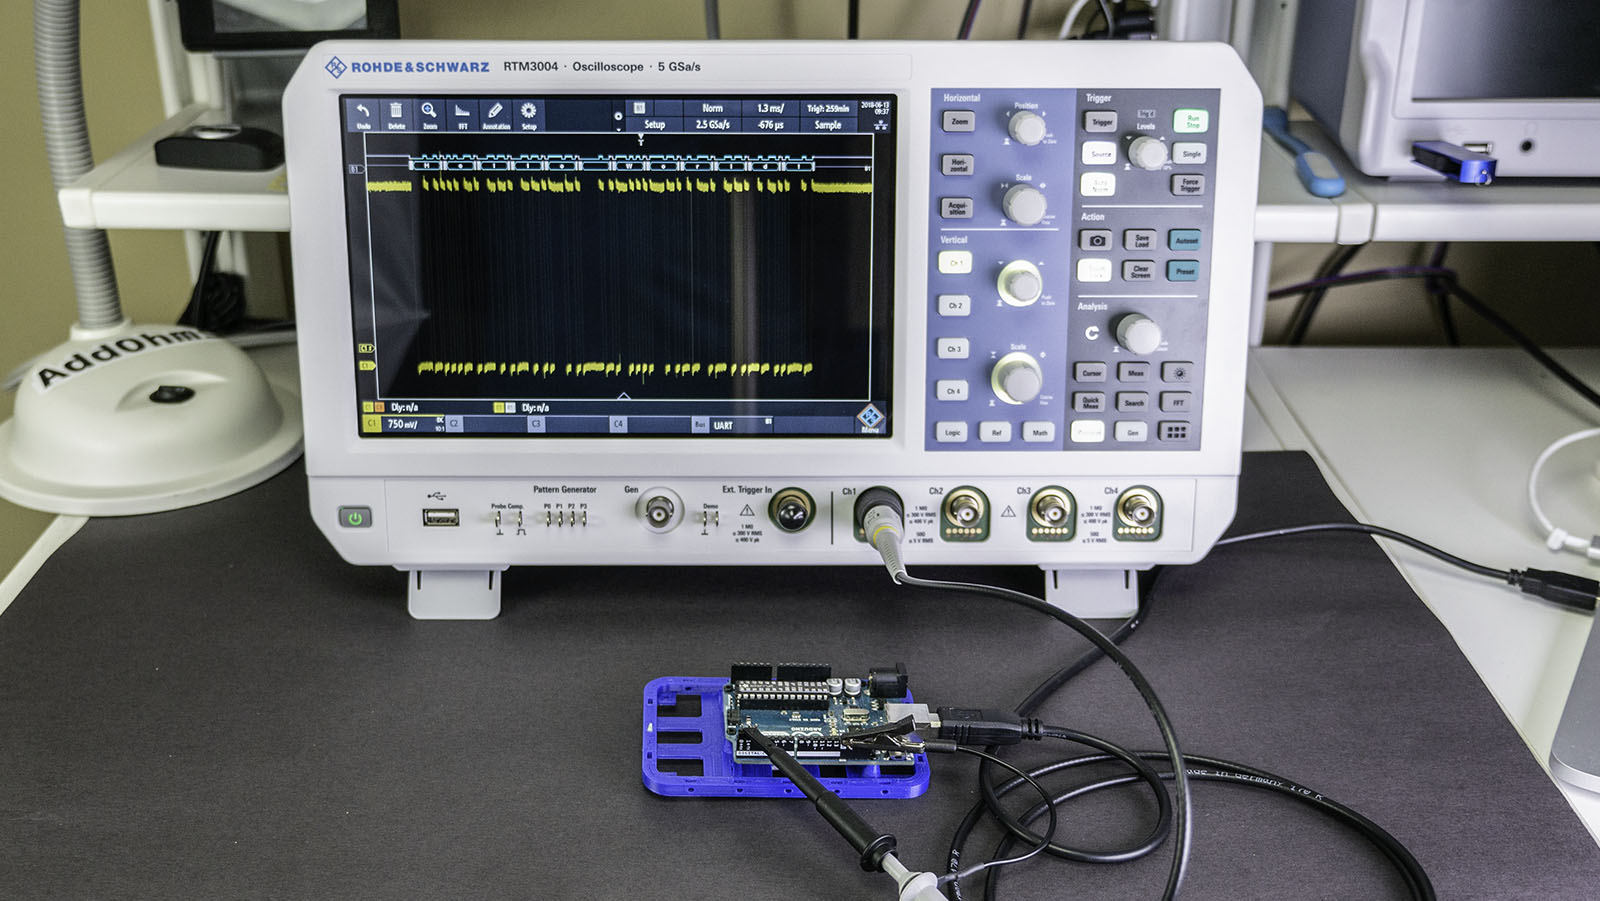 RTM3004 Oscilloscope Measurements with an Arduino Uno